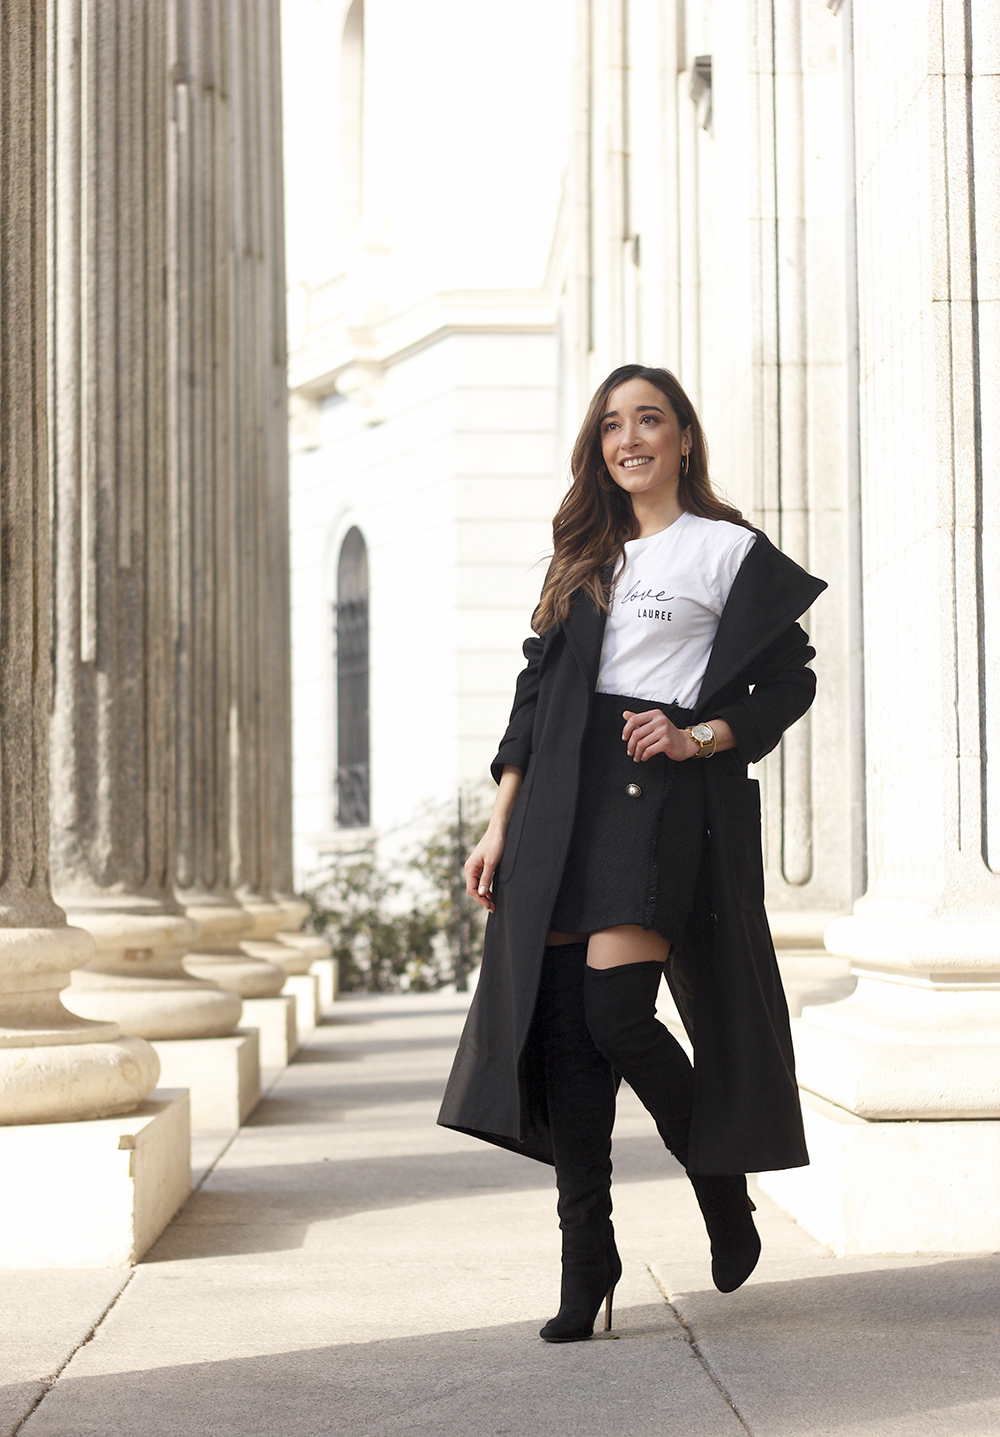 tweed skirt over the knee boots black trench coat street style outfit 20196